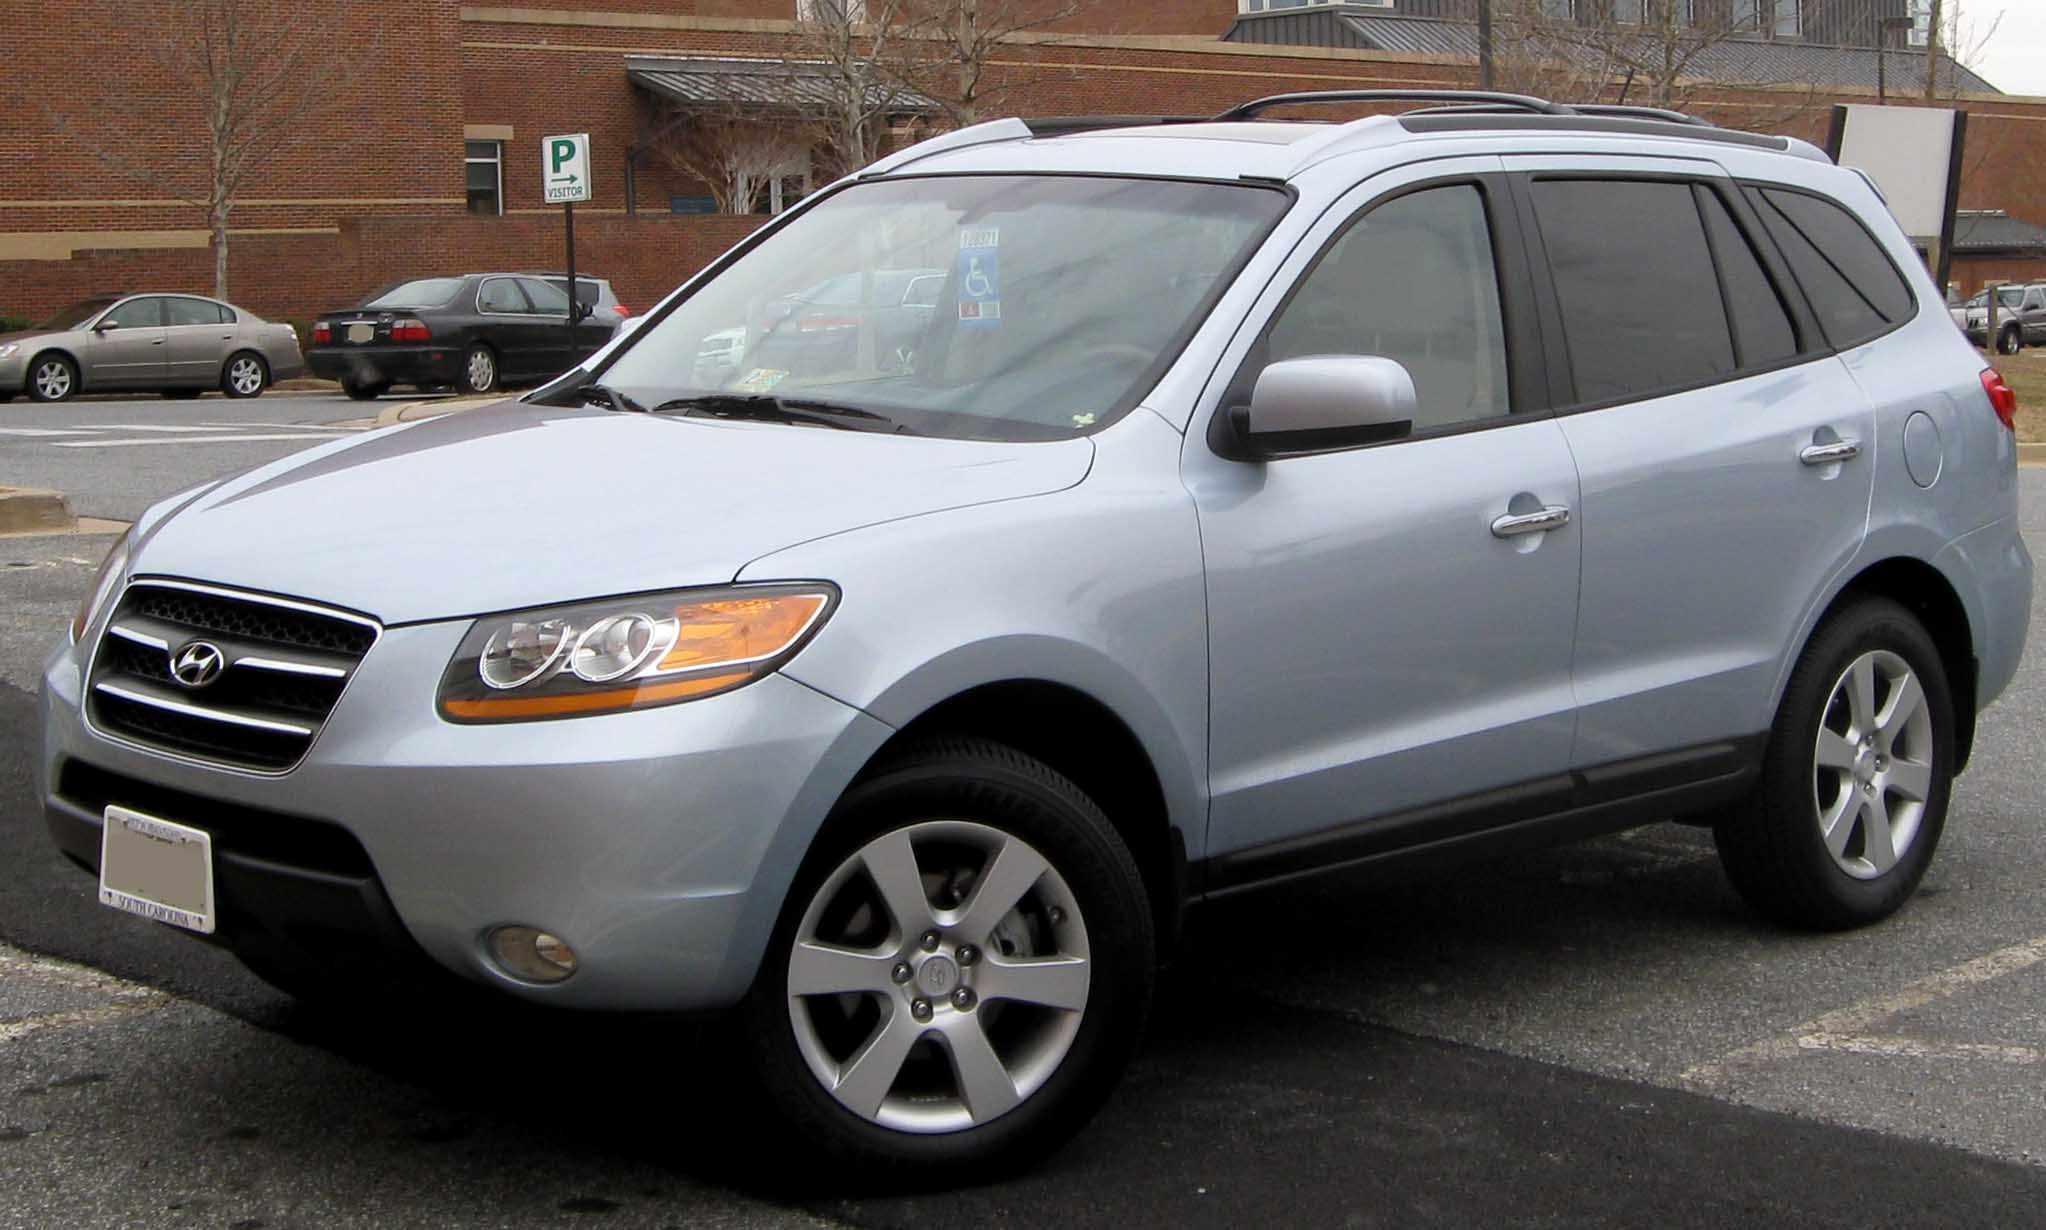 2009 Hyundai Santa Fe Information And Photos Momentcar